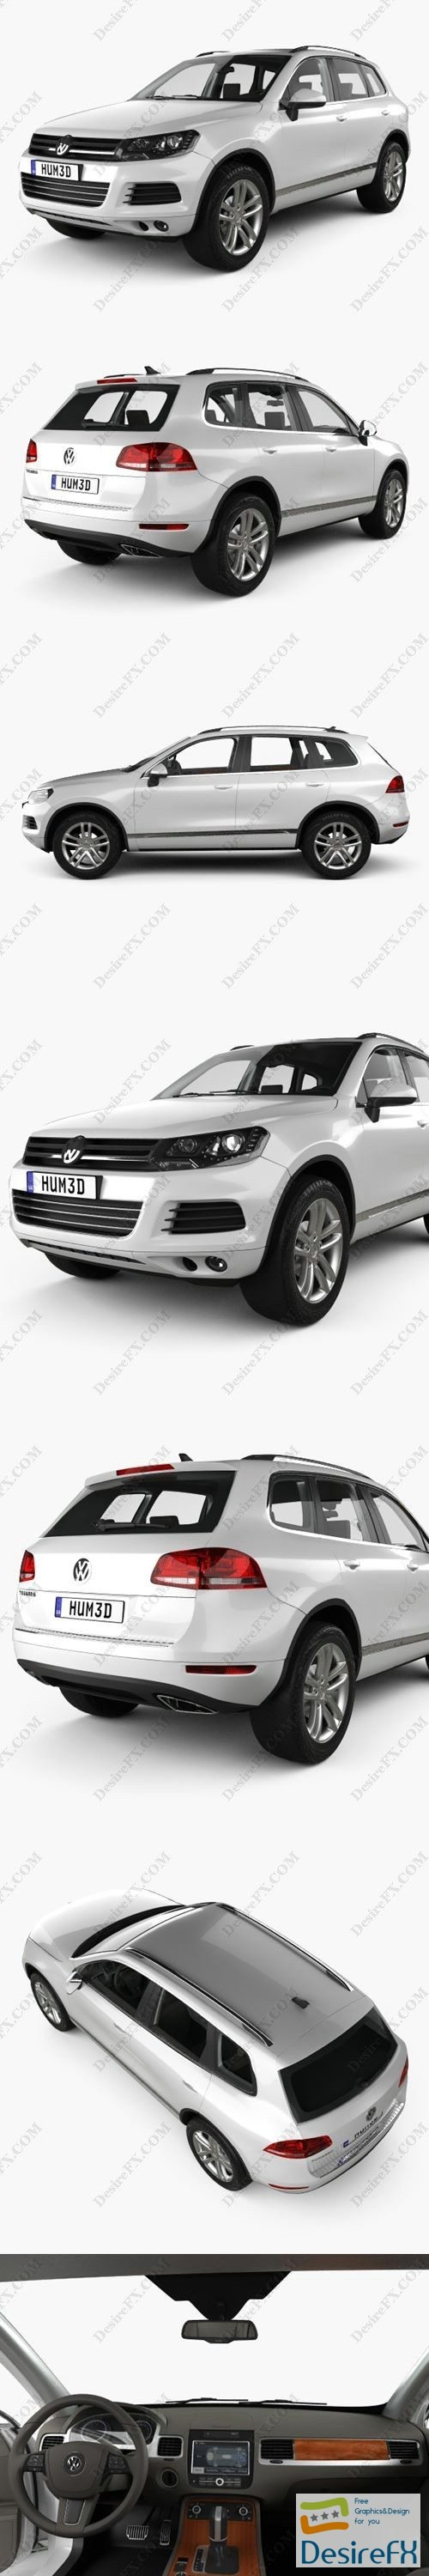 Volkswagen Touareg with HQ interior 2010 3D Model